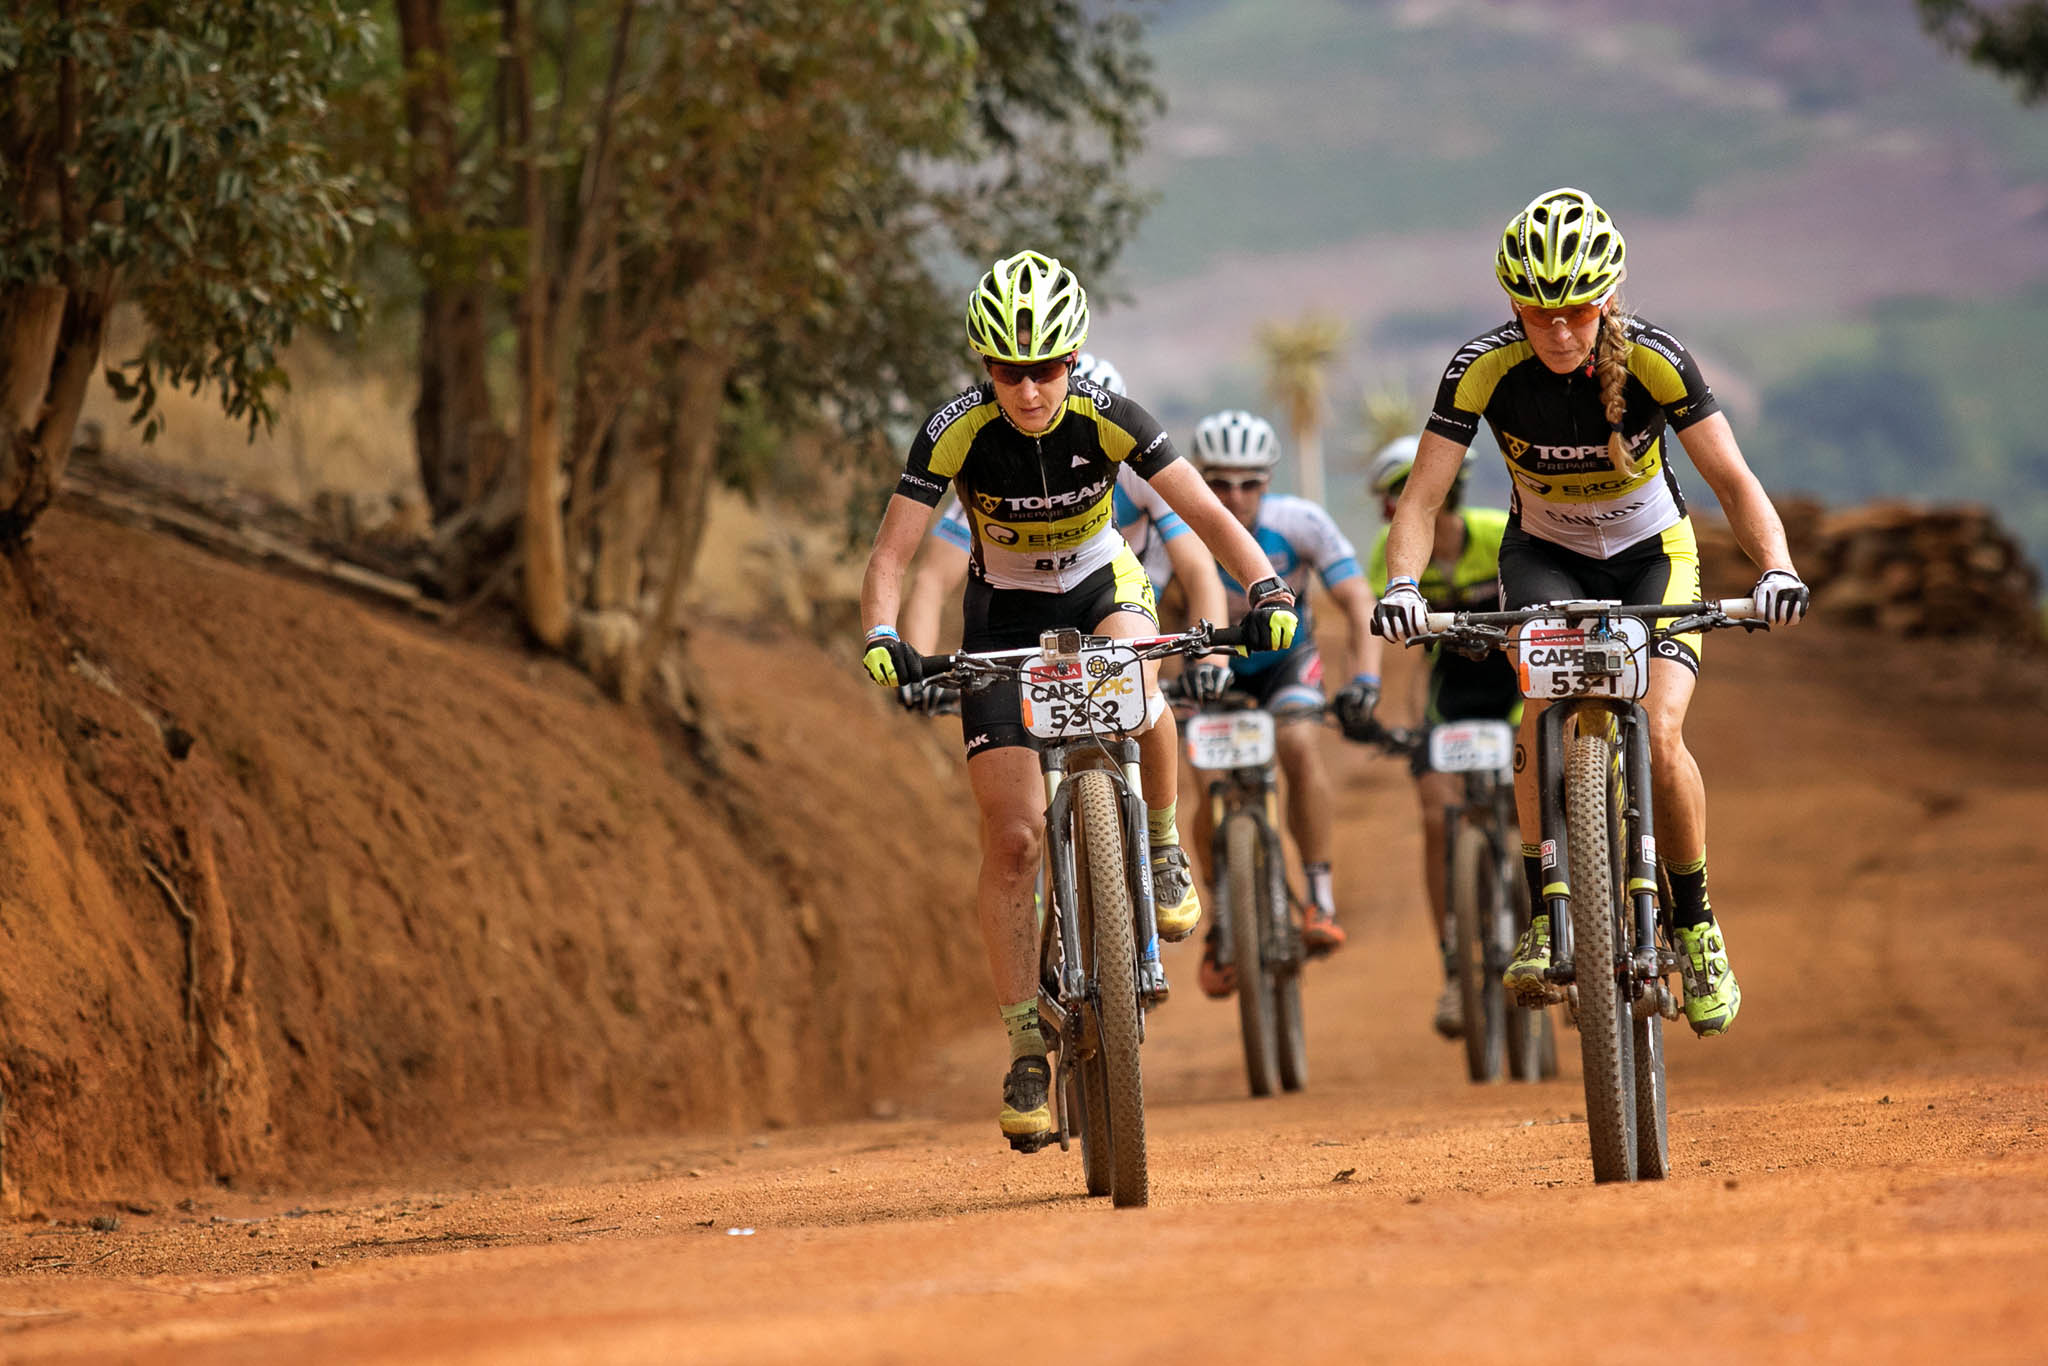 Sally Bigham and Adel Morath of Team Topeak Ergon during stage 6 of the 2016 Absa Cape Epic Mountain Bike stage race from Boschendal in Stellenbosch, South Africa on the 19th March 2015 Photo by Mark Sampson/Cape Epic/SPORTZPICS PLEASE ENSURE THE APPROPRIATE CREDIT IS GIVEN TO THE PHOTOGRAPHER AND SPORTZPICS ALONG WITH THE ABSA CAPE EPIC ace2016